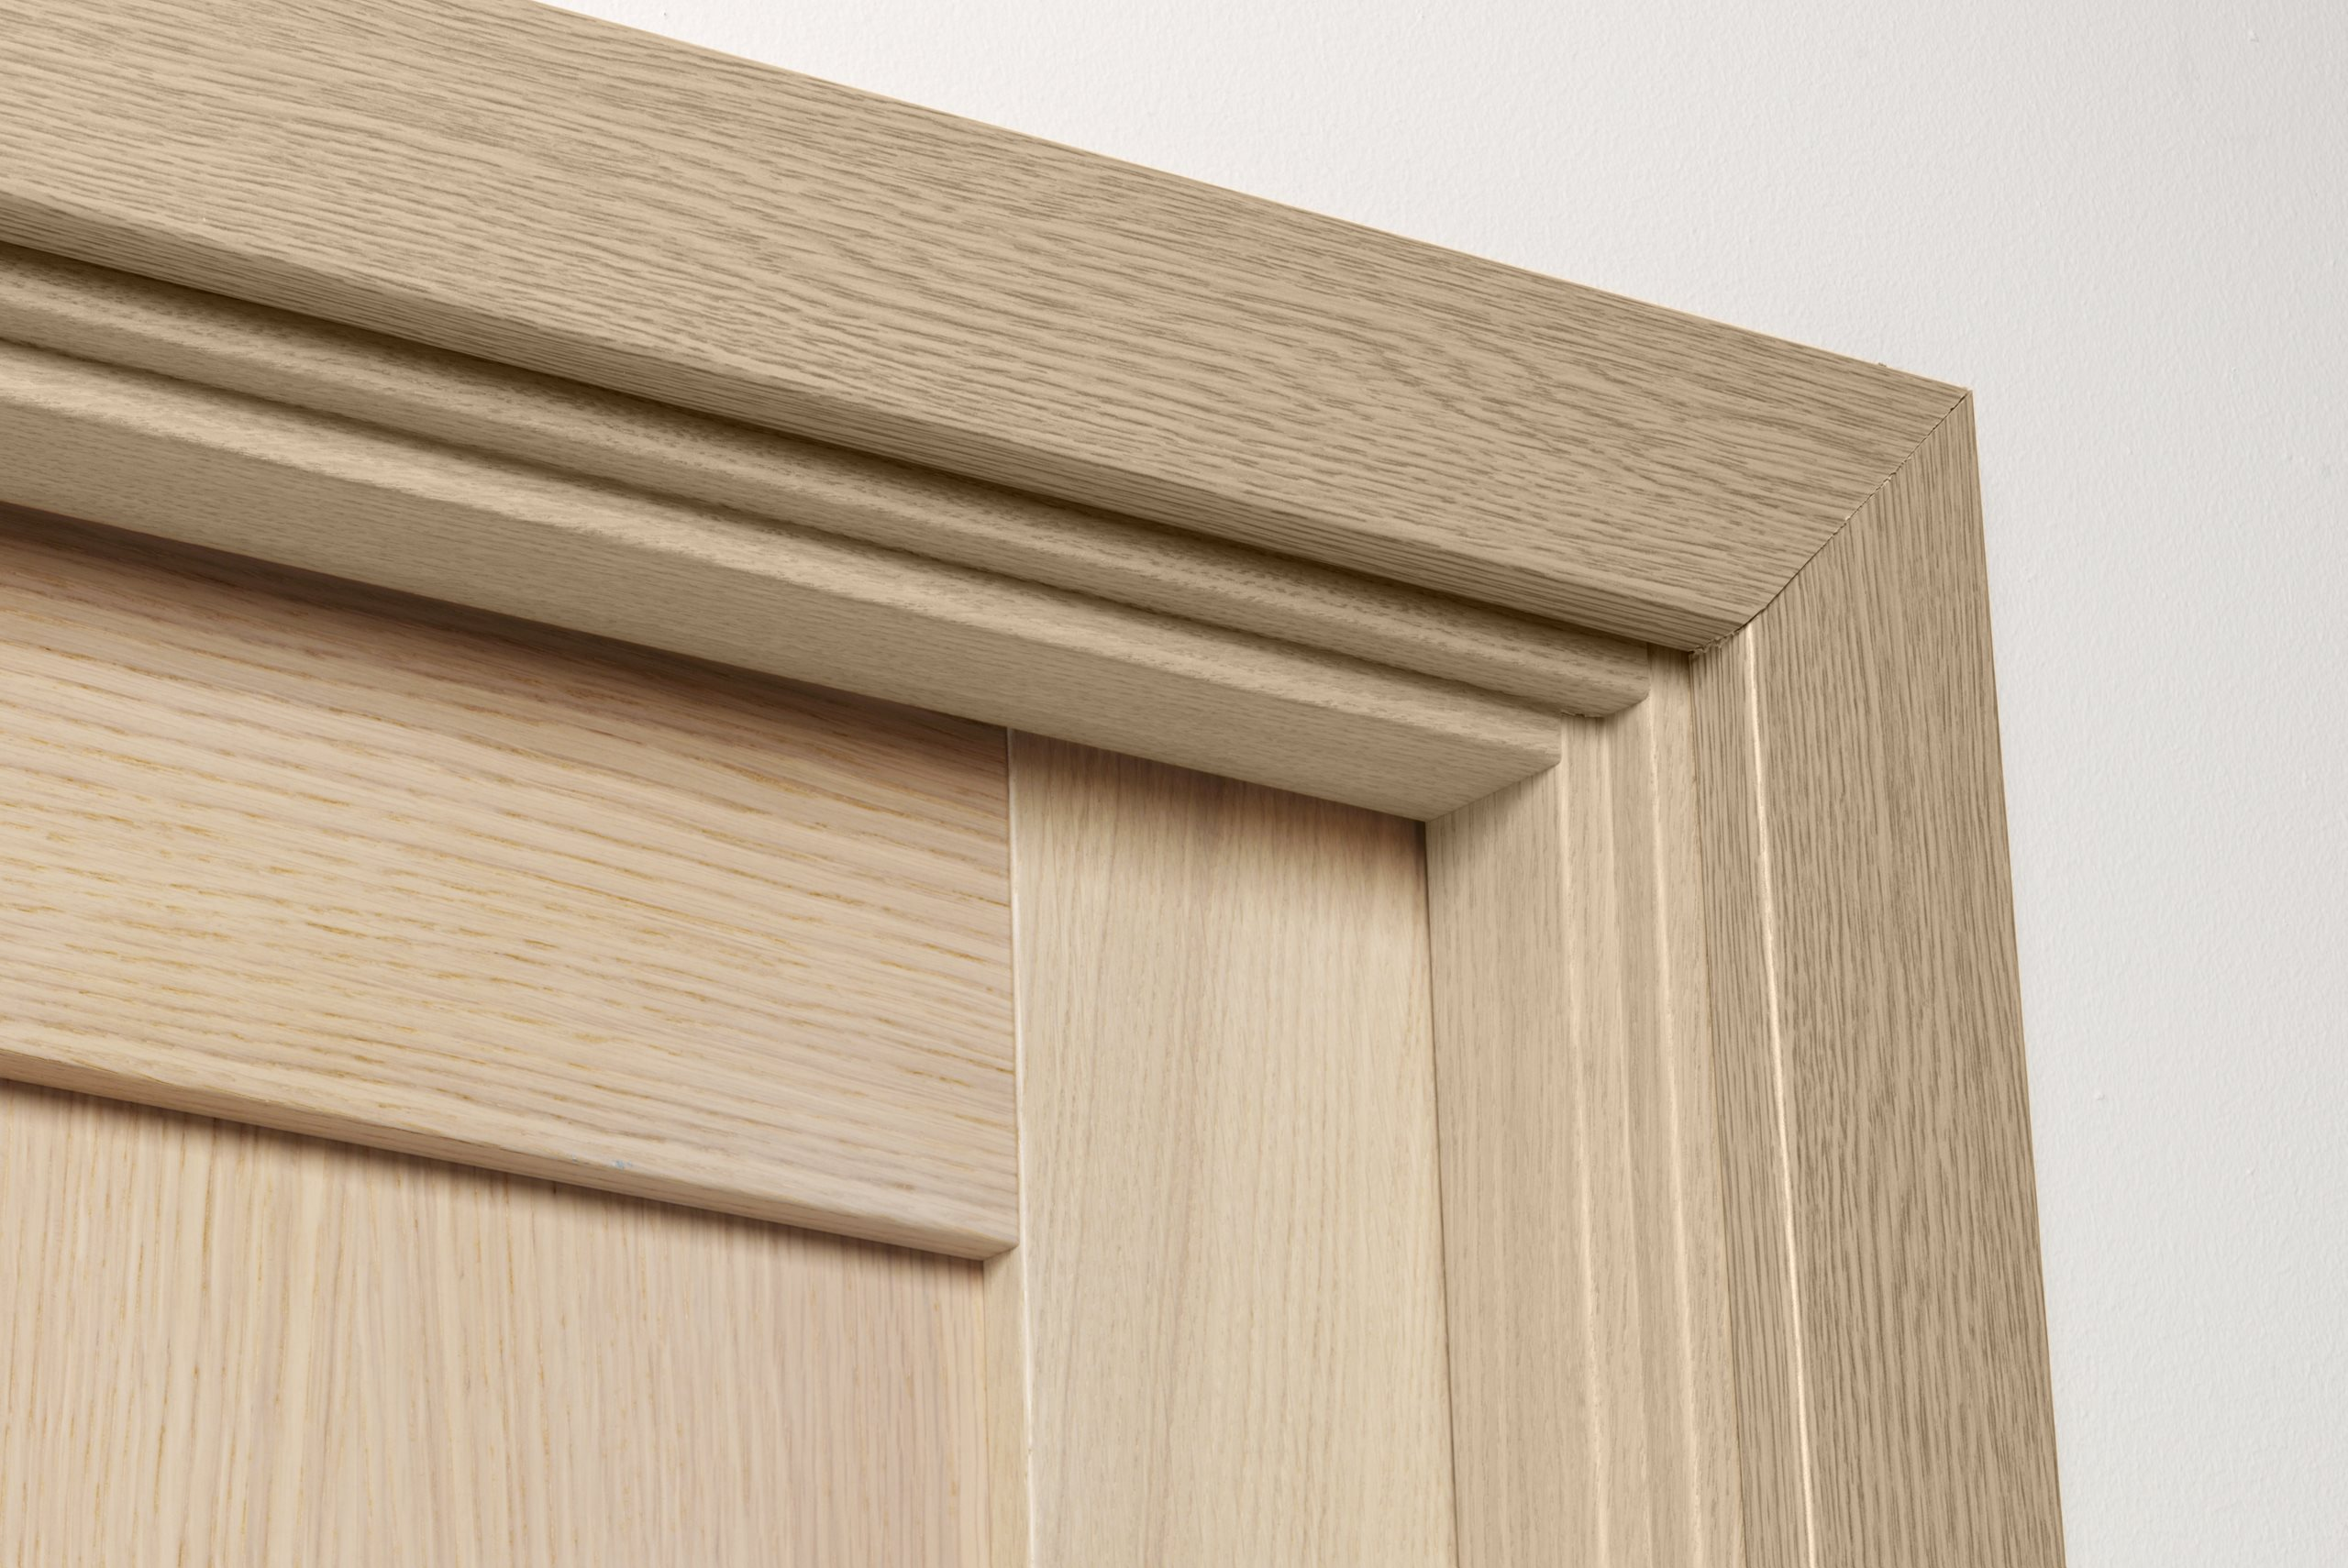 Unique-white-oak-close-1